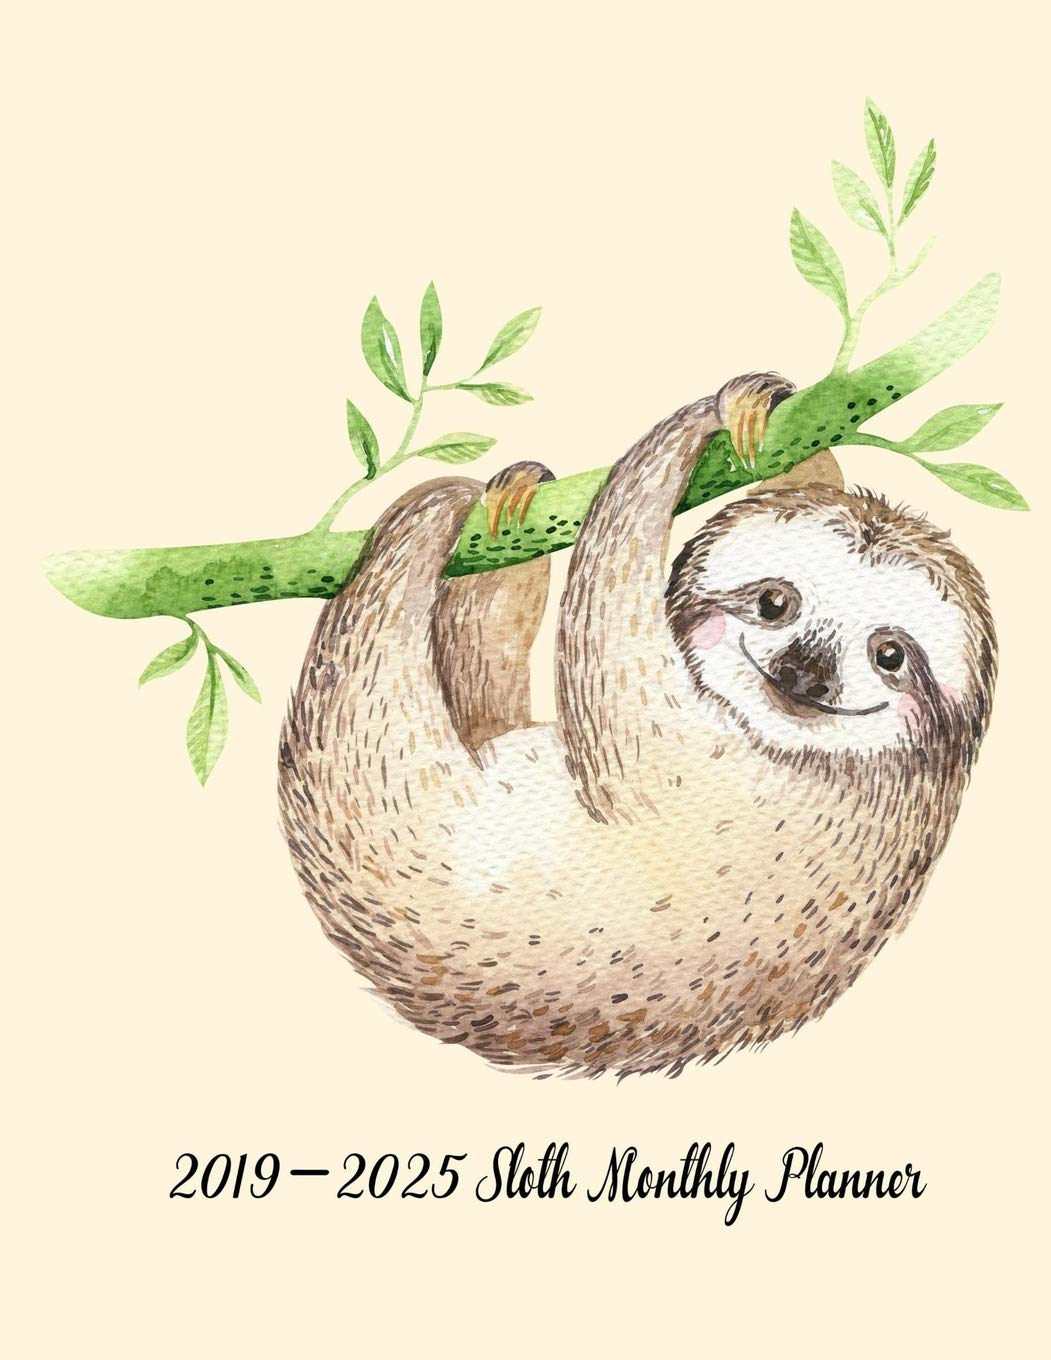 Monthly Calendar To Print, December 2019-2025 Amazon.com: 2019 2025 Sloth Monthly Planner: 5 Year Basic Planner